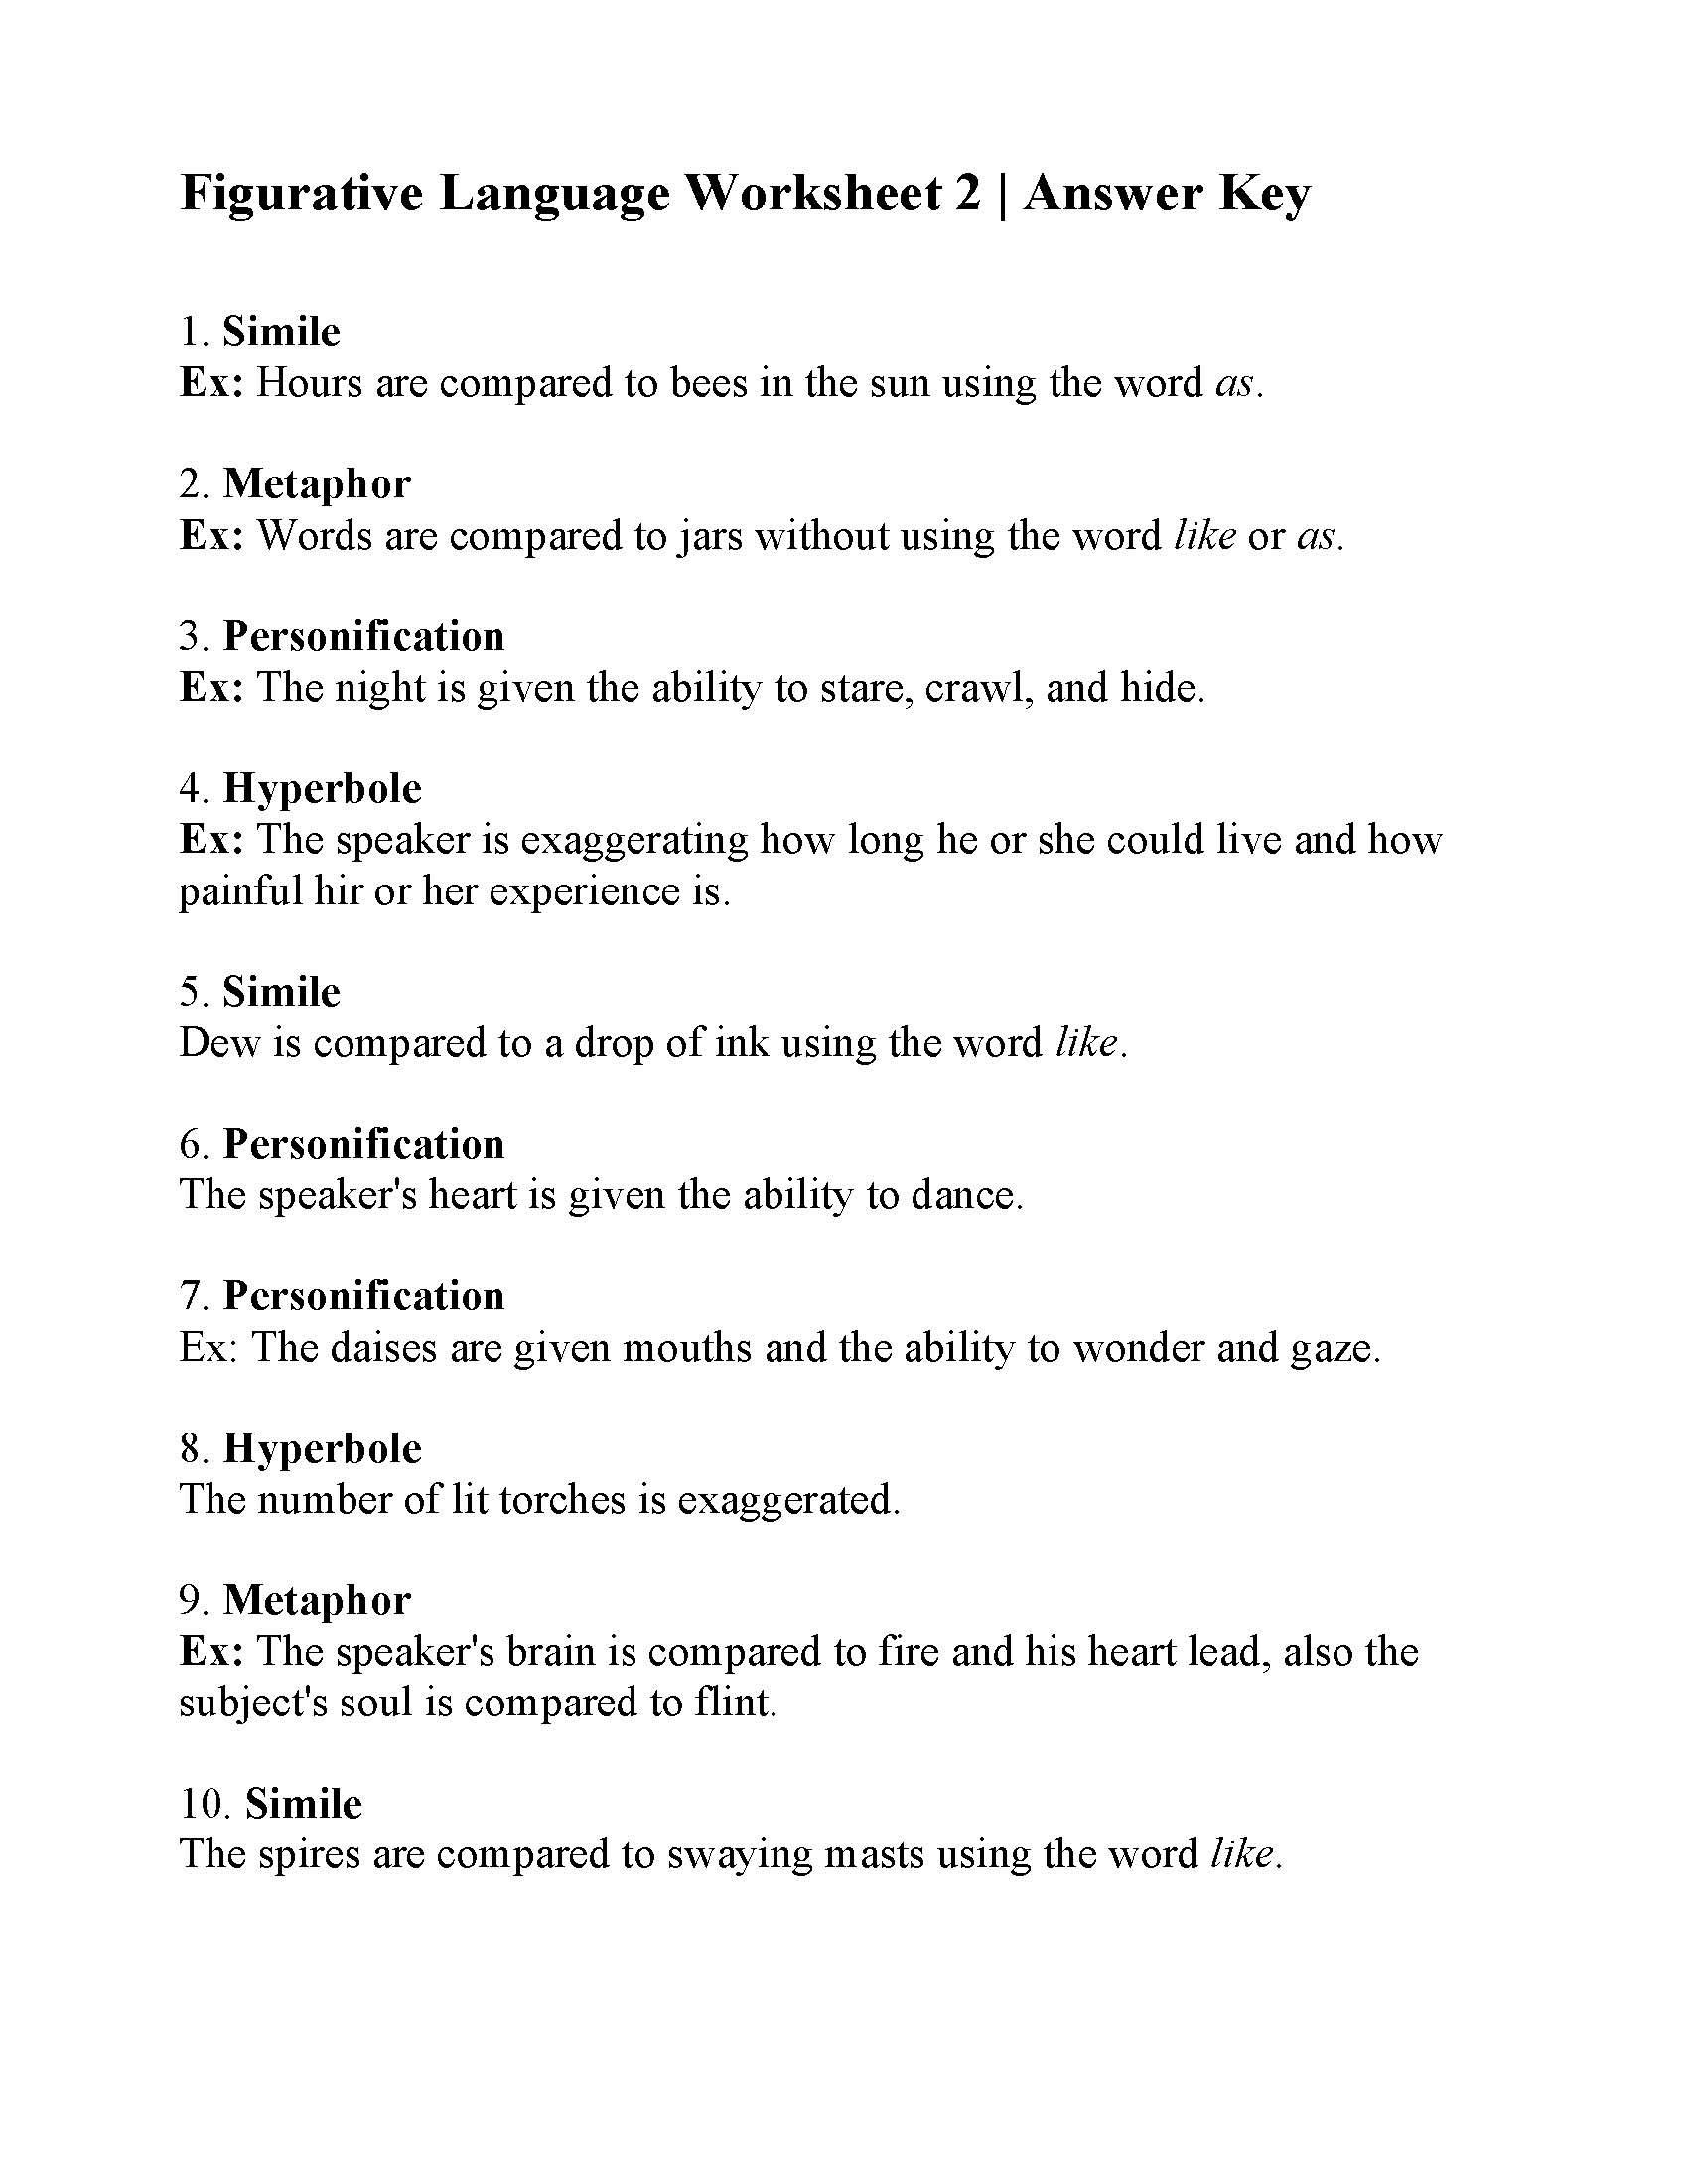 Figurative Language Worksheets 5th Grade This is the Answer Key for the Figurative Language Worksheet